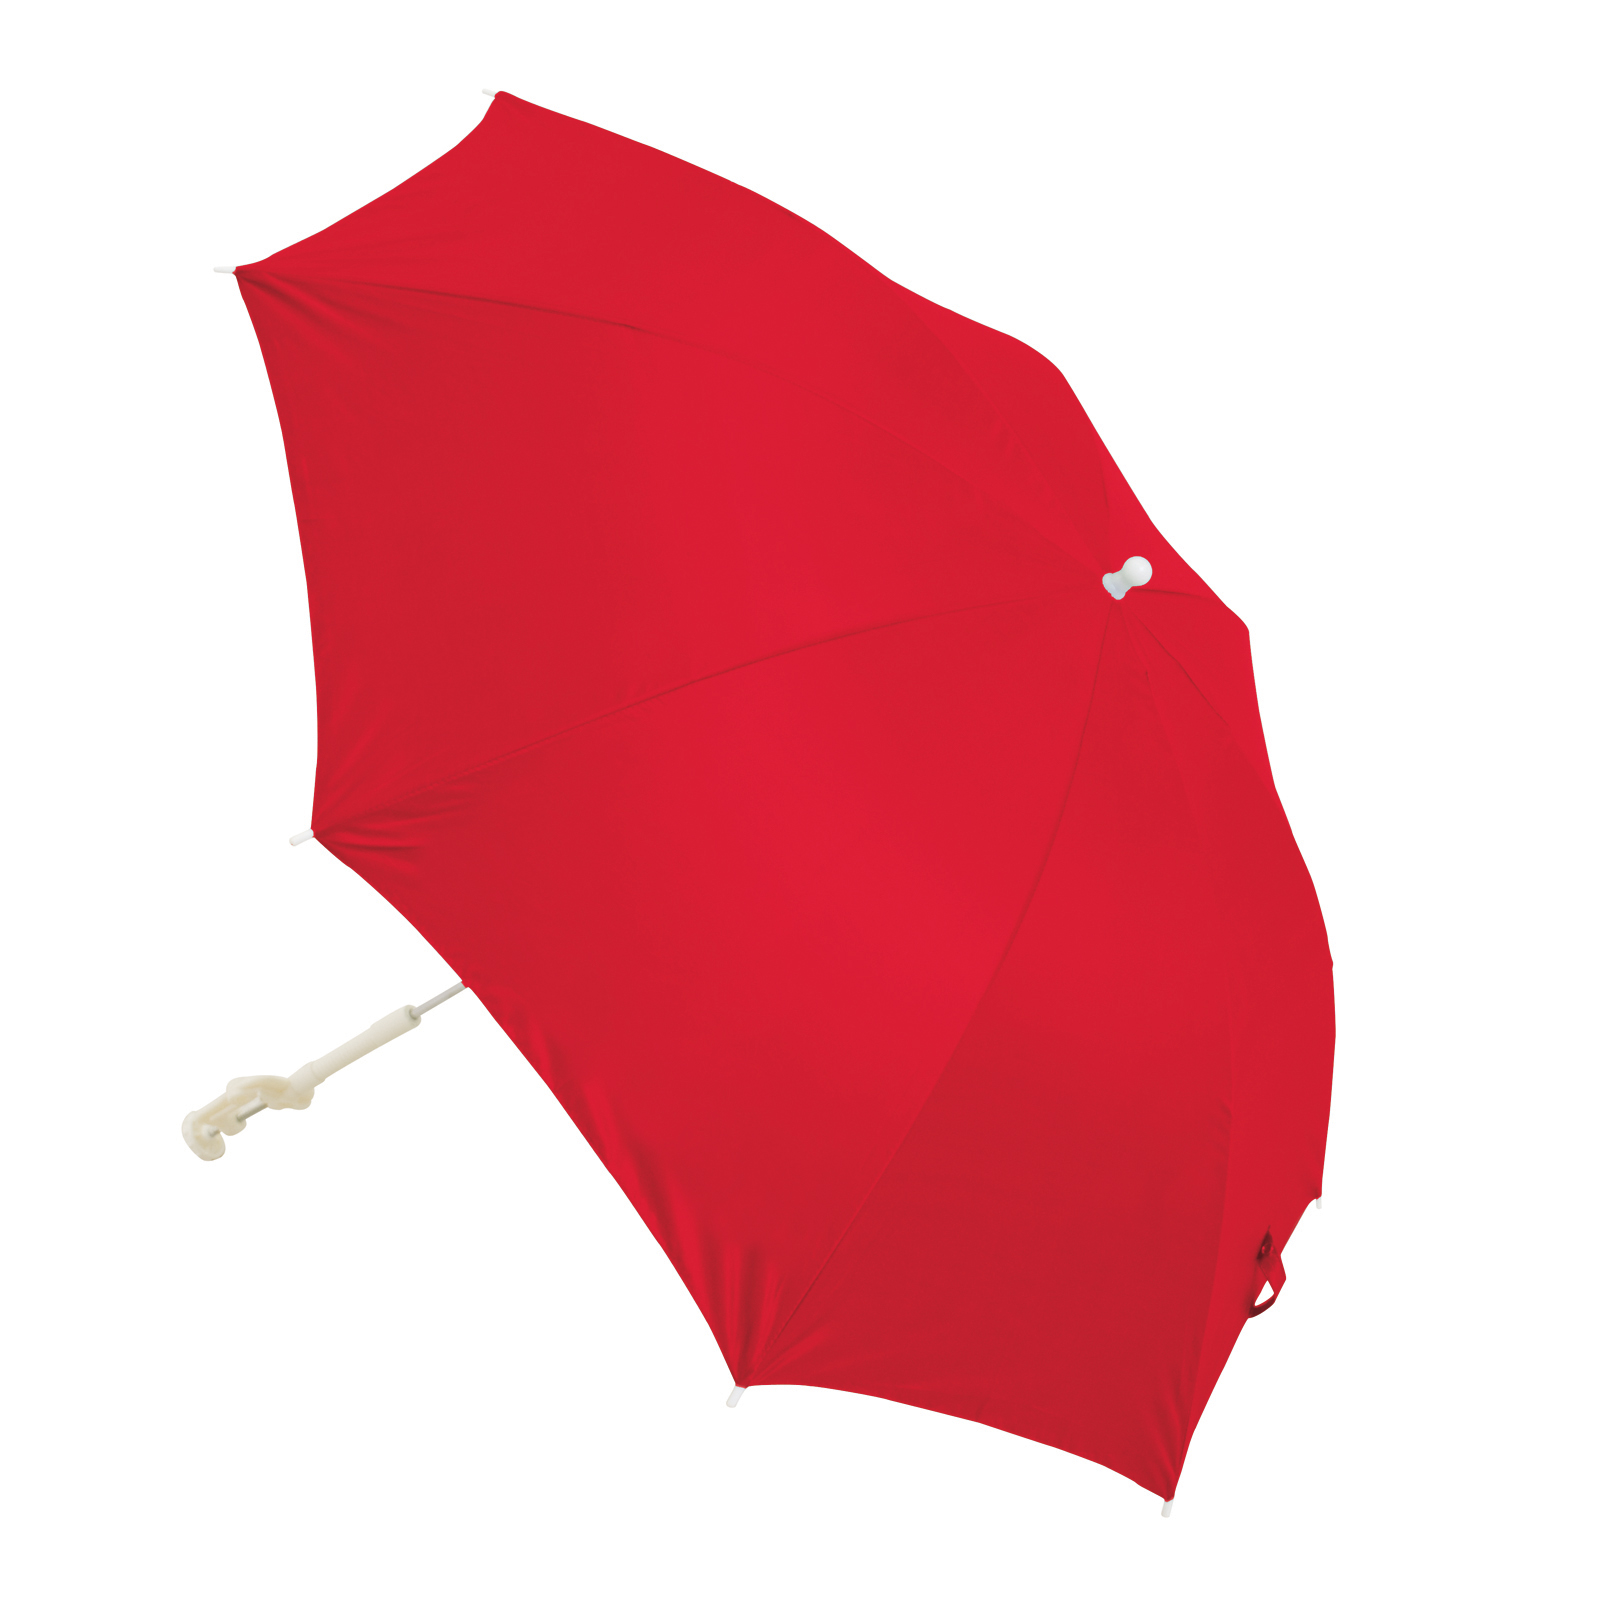 Clamp On Chair Umbrella Rio Creations Clamp On Umbrella Red Limited Availability